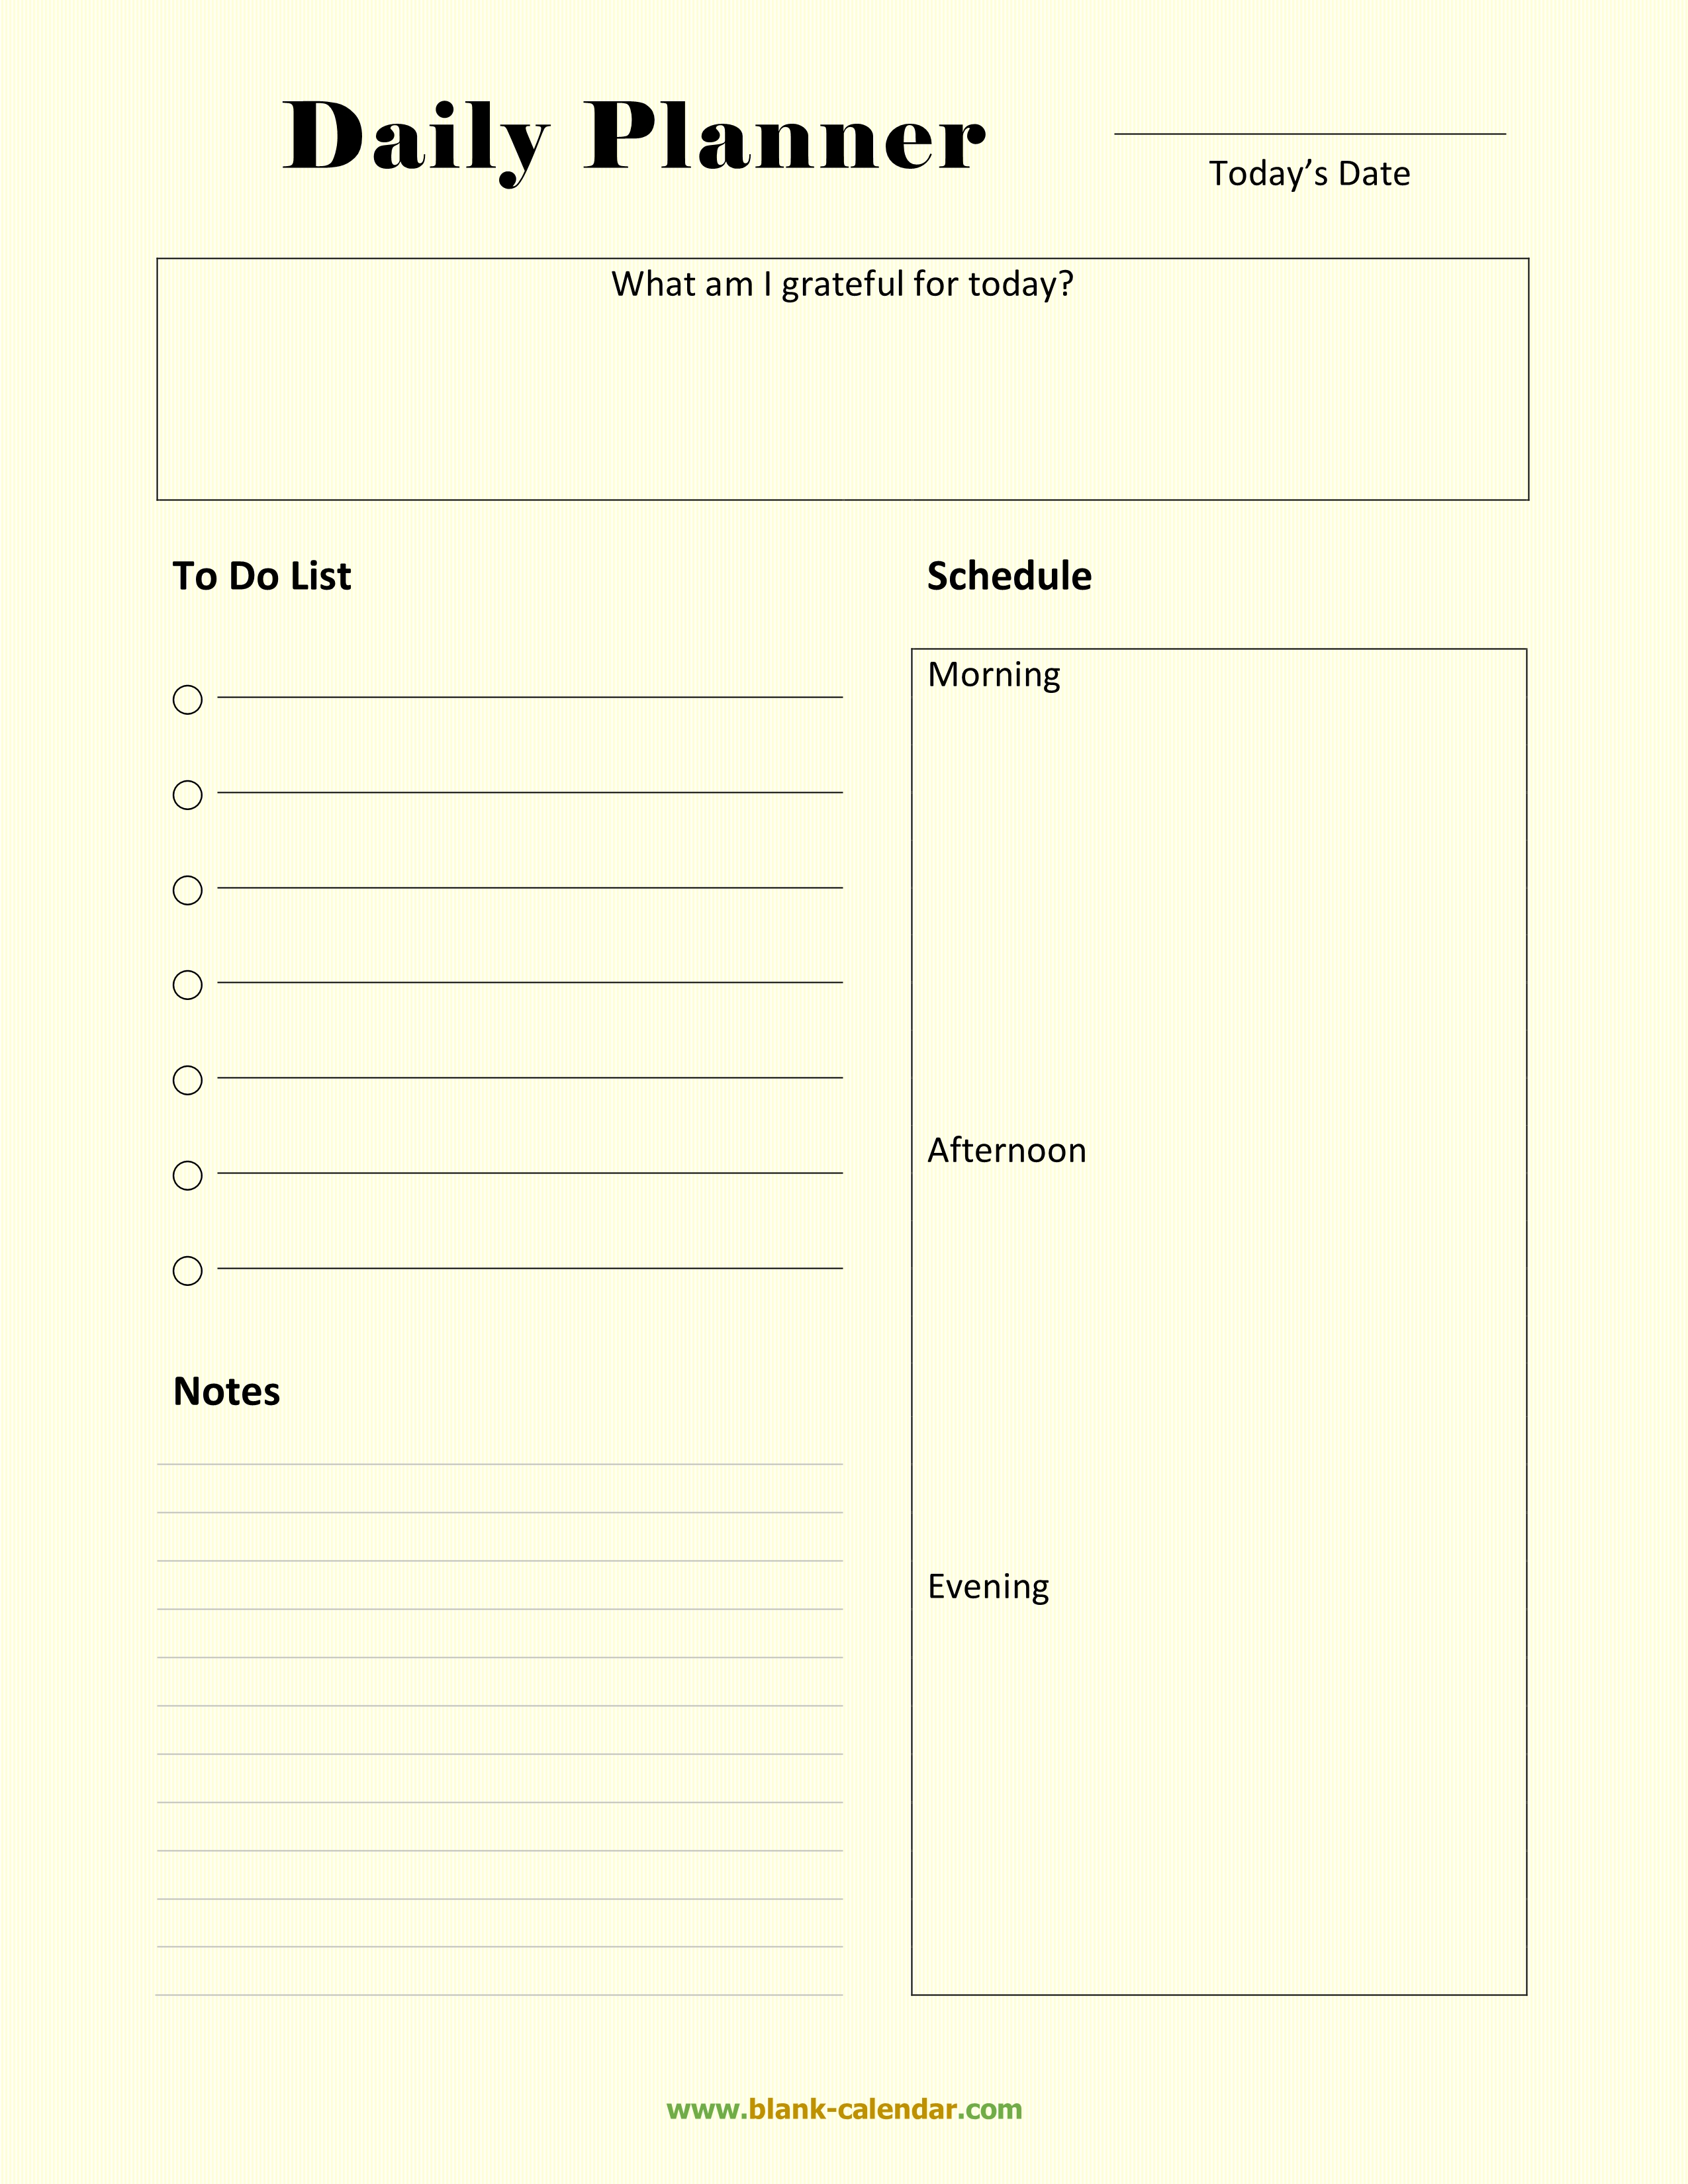 Daily planner templates word excel pdf daily planner template 05 maxwellsz